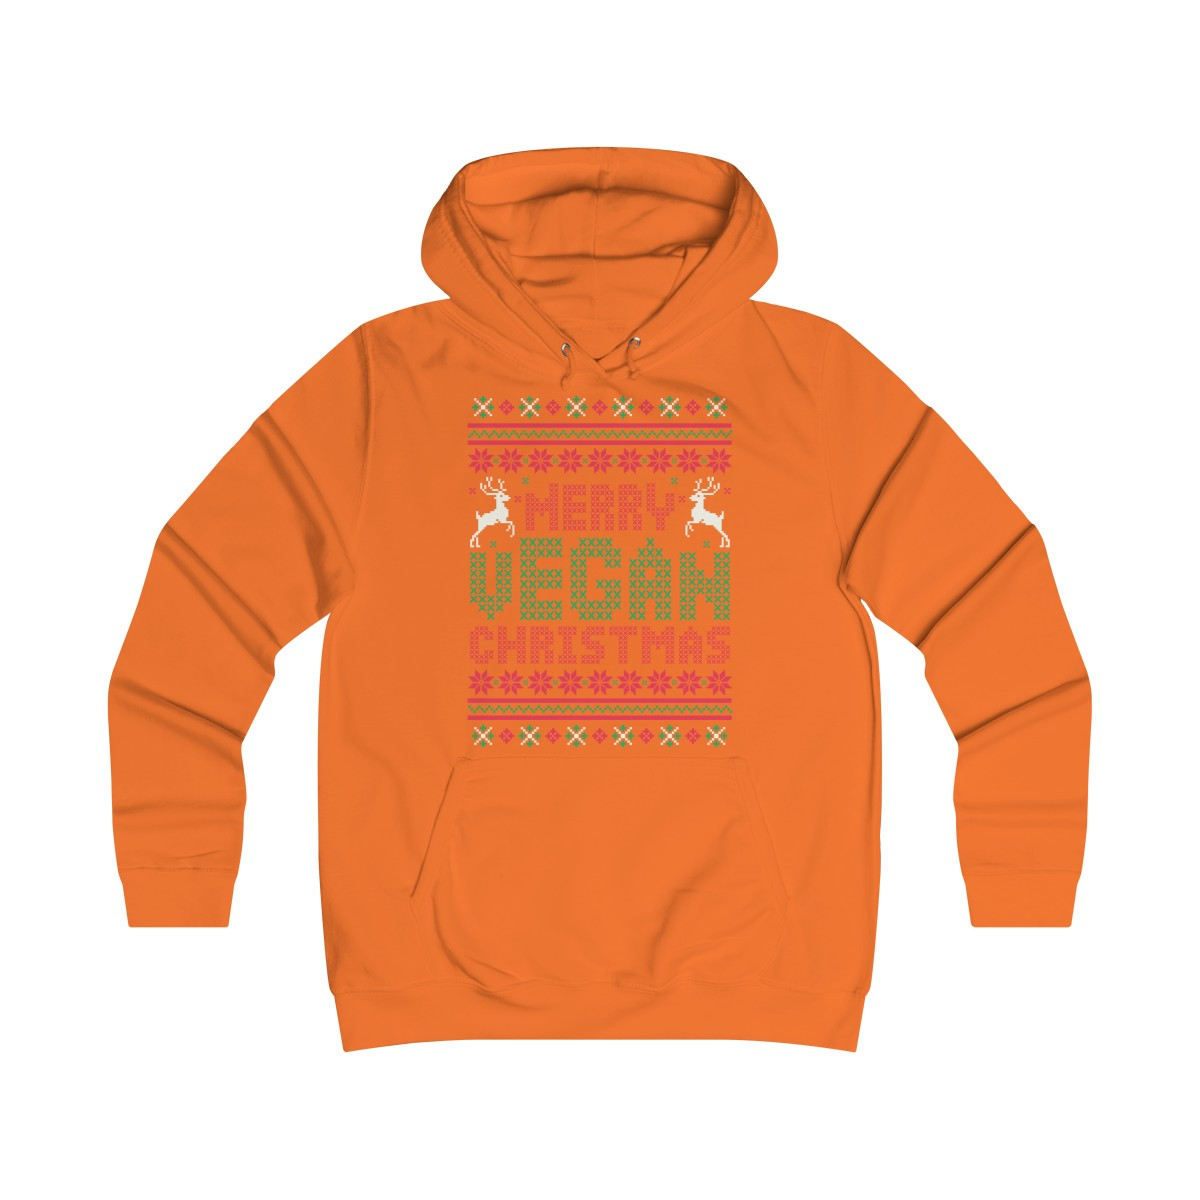 Merry Vegan Christmas - Hoodie - My Vegan Menu